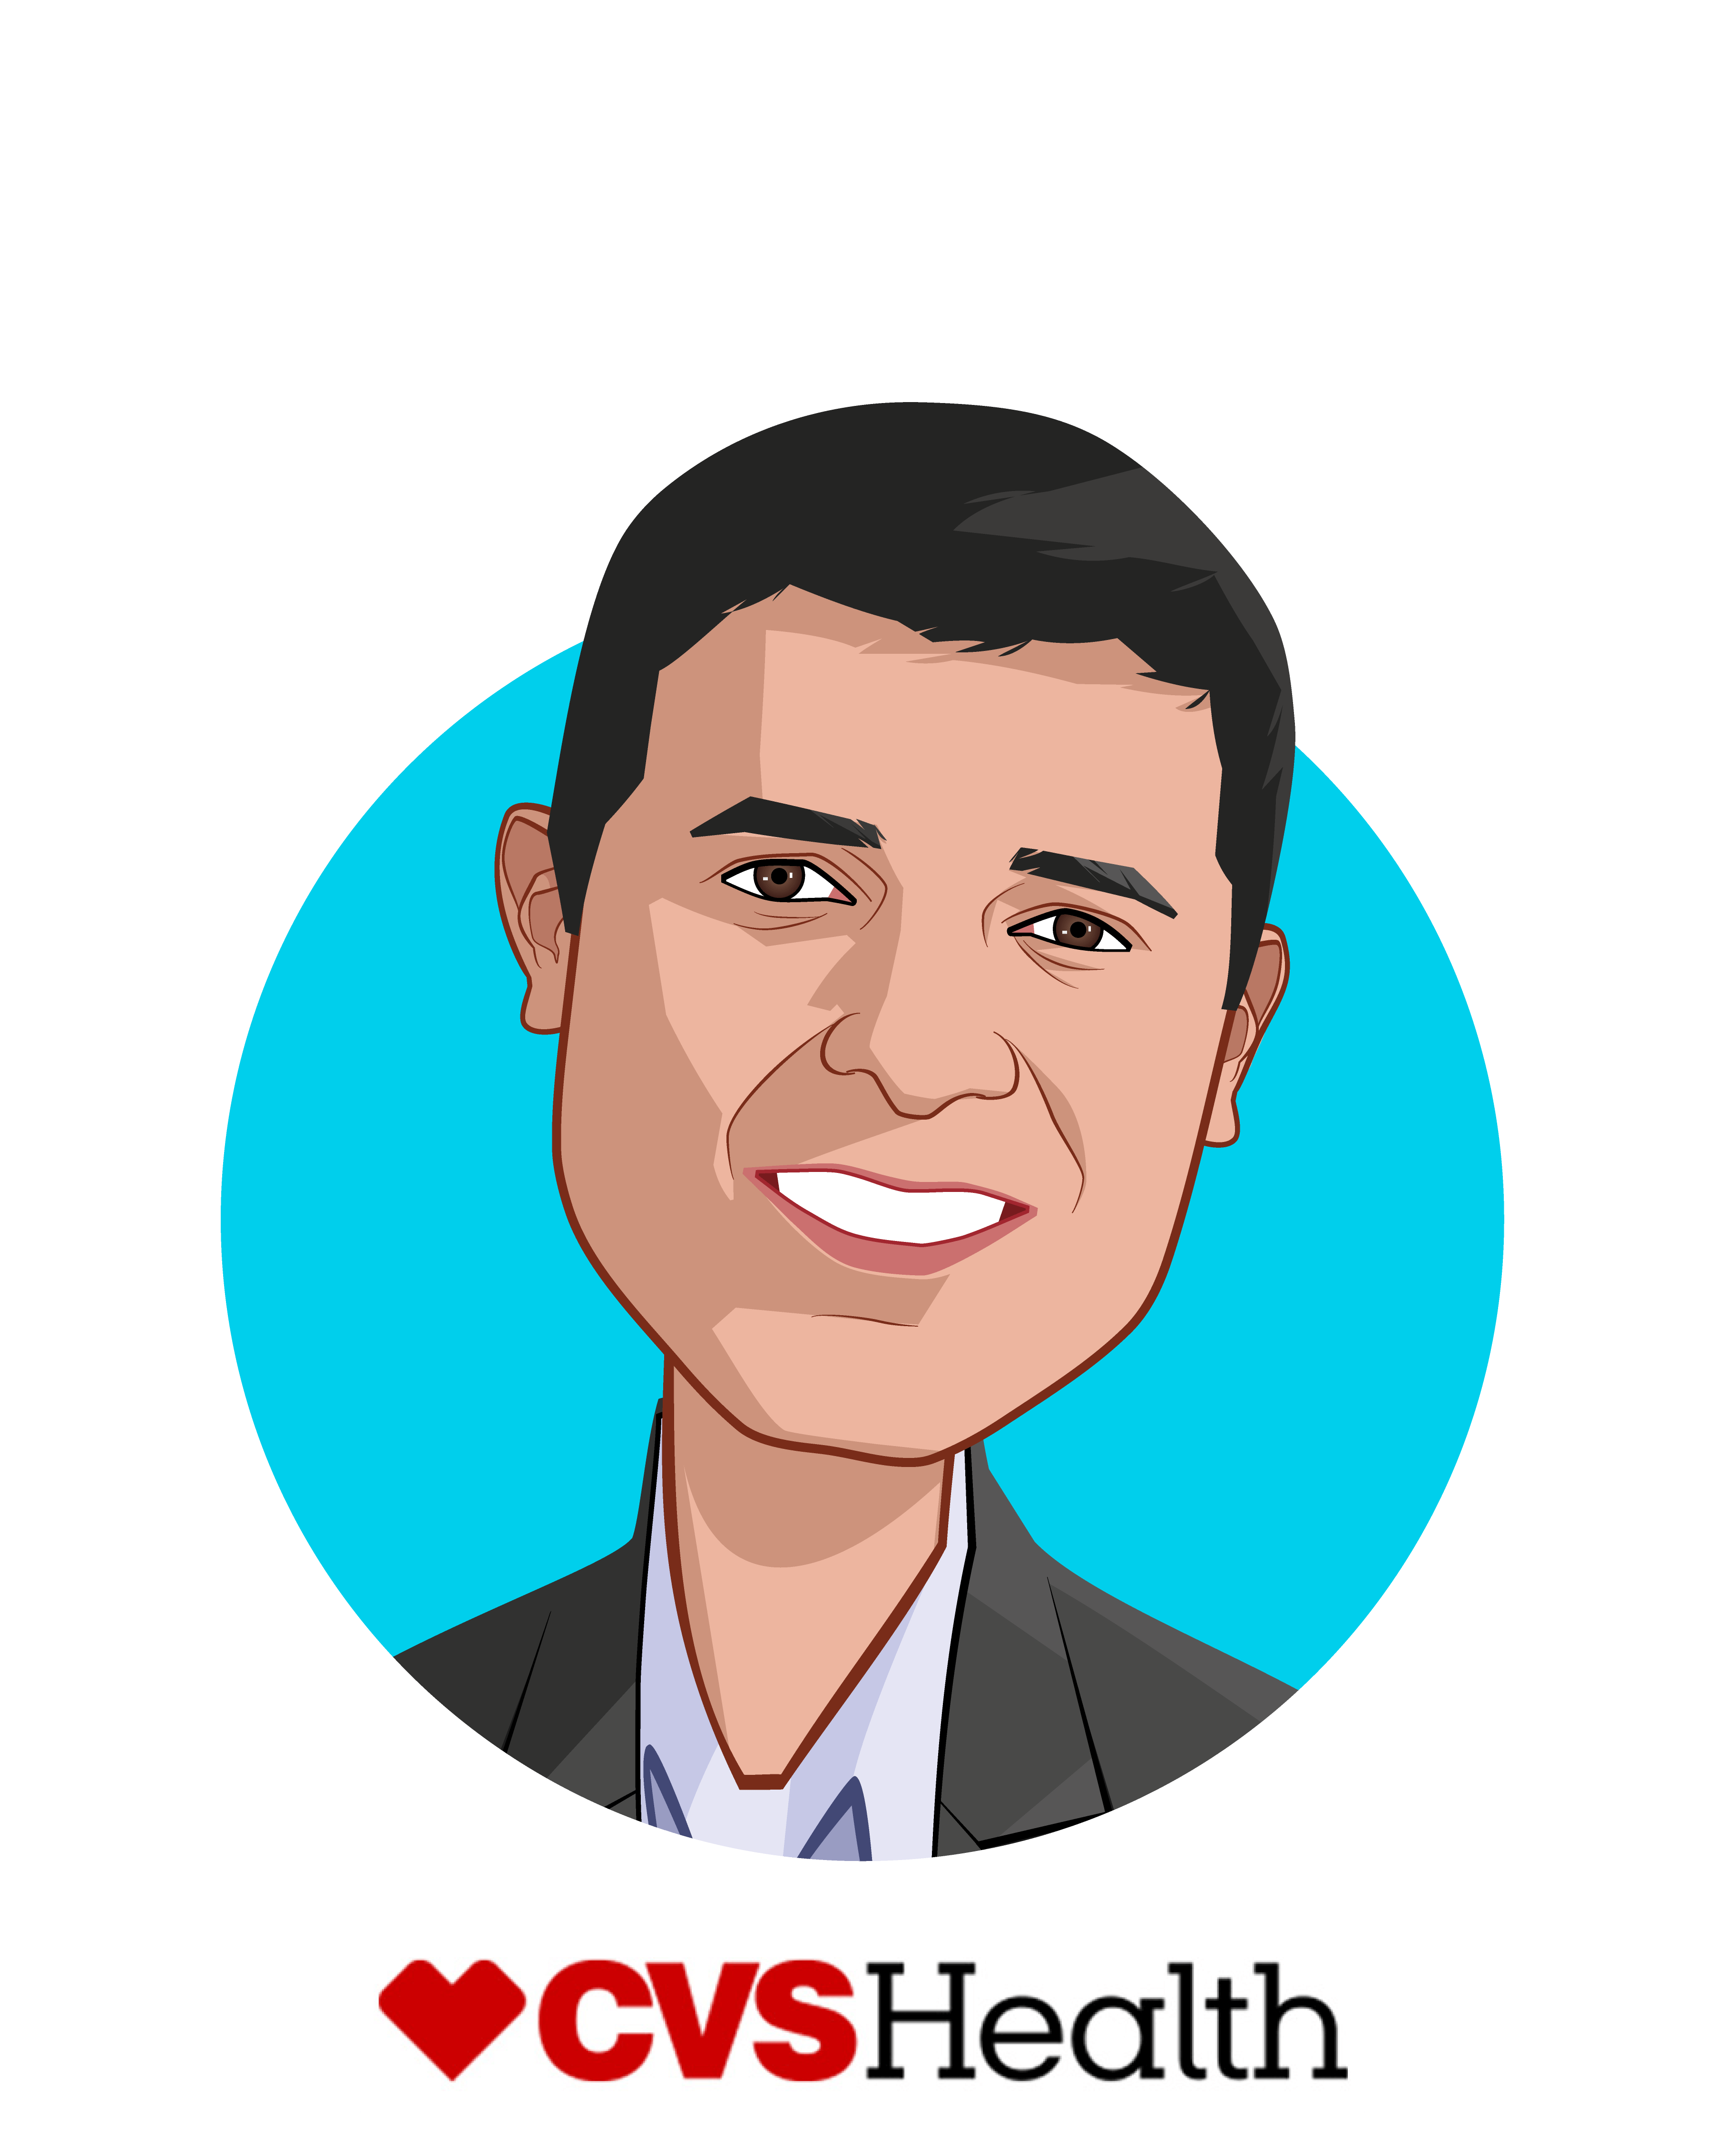 Main caricature of Firdaus Bhathena, who is speaking at HLTH and is SVP, Chief Digital Officer at CVS Health